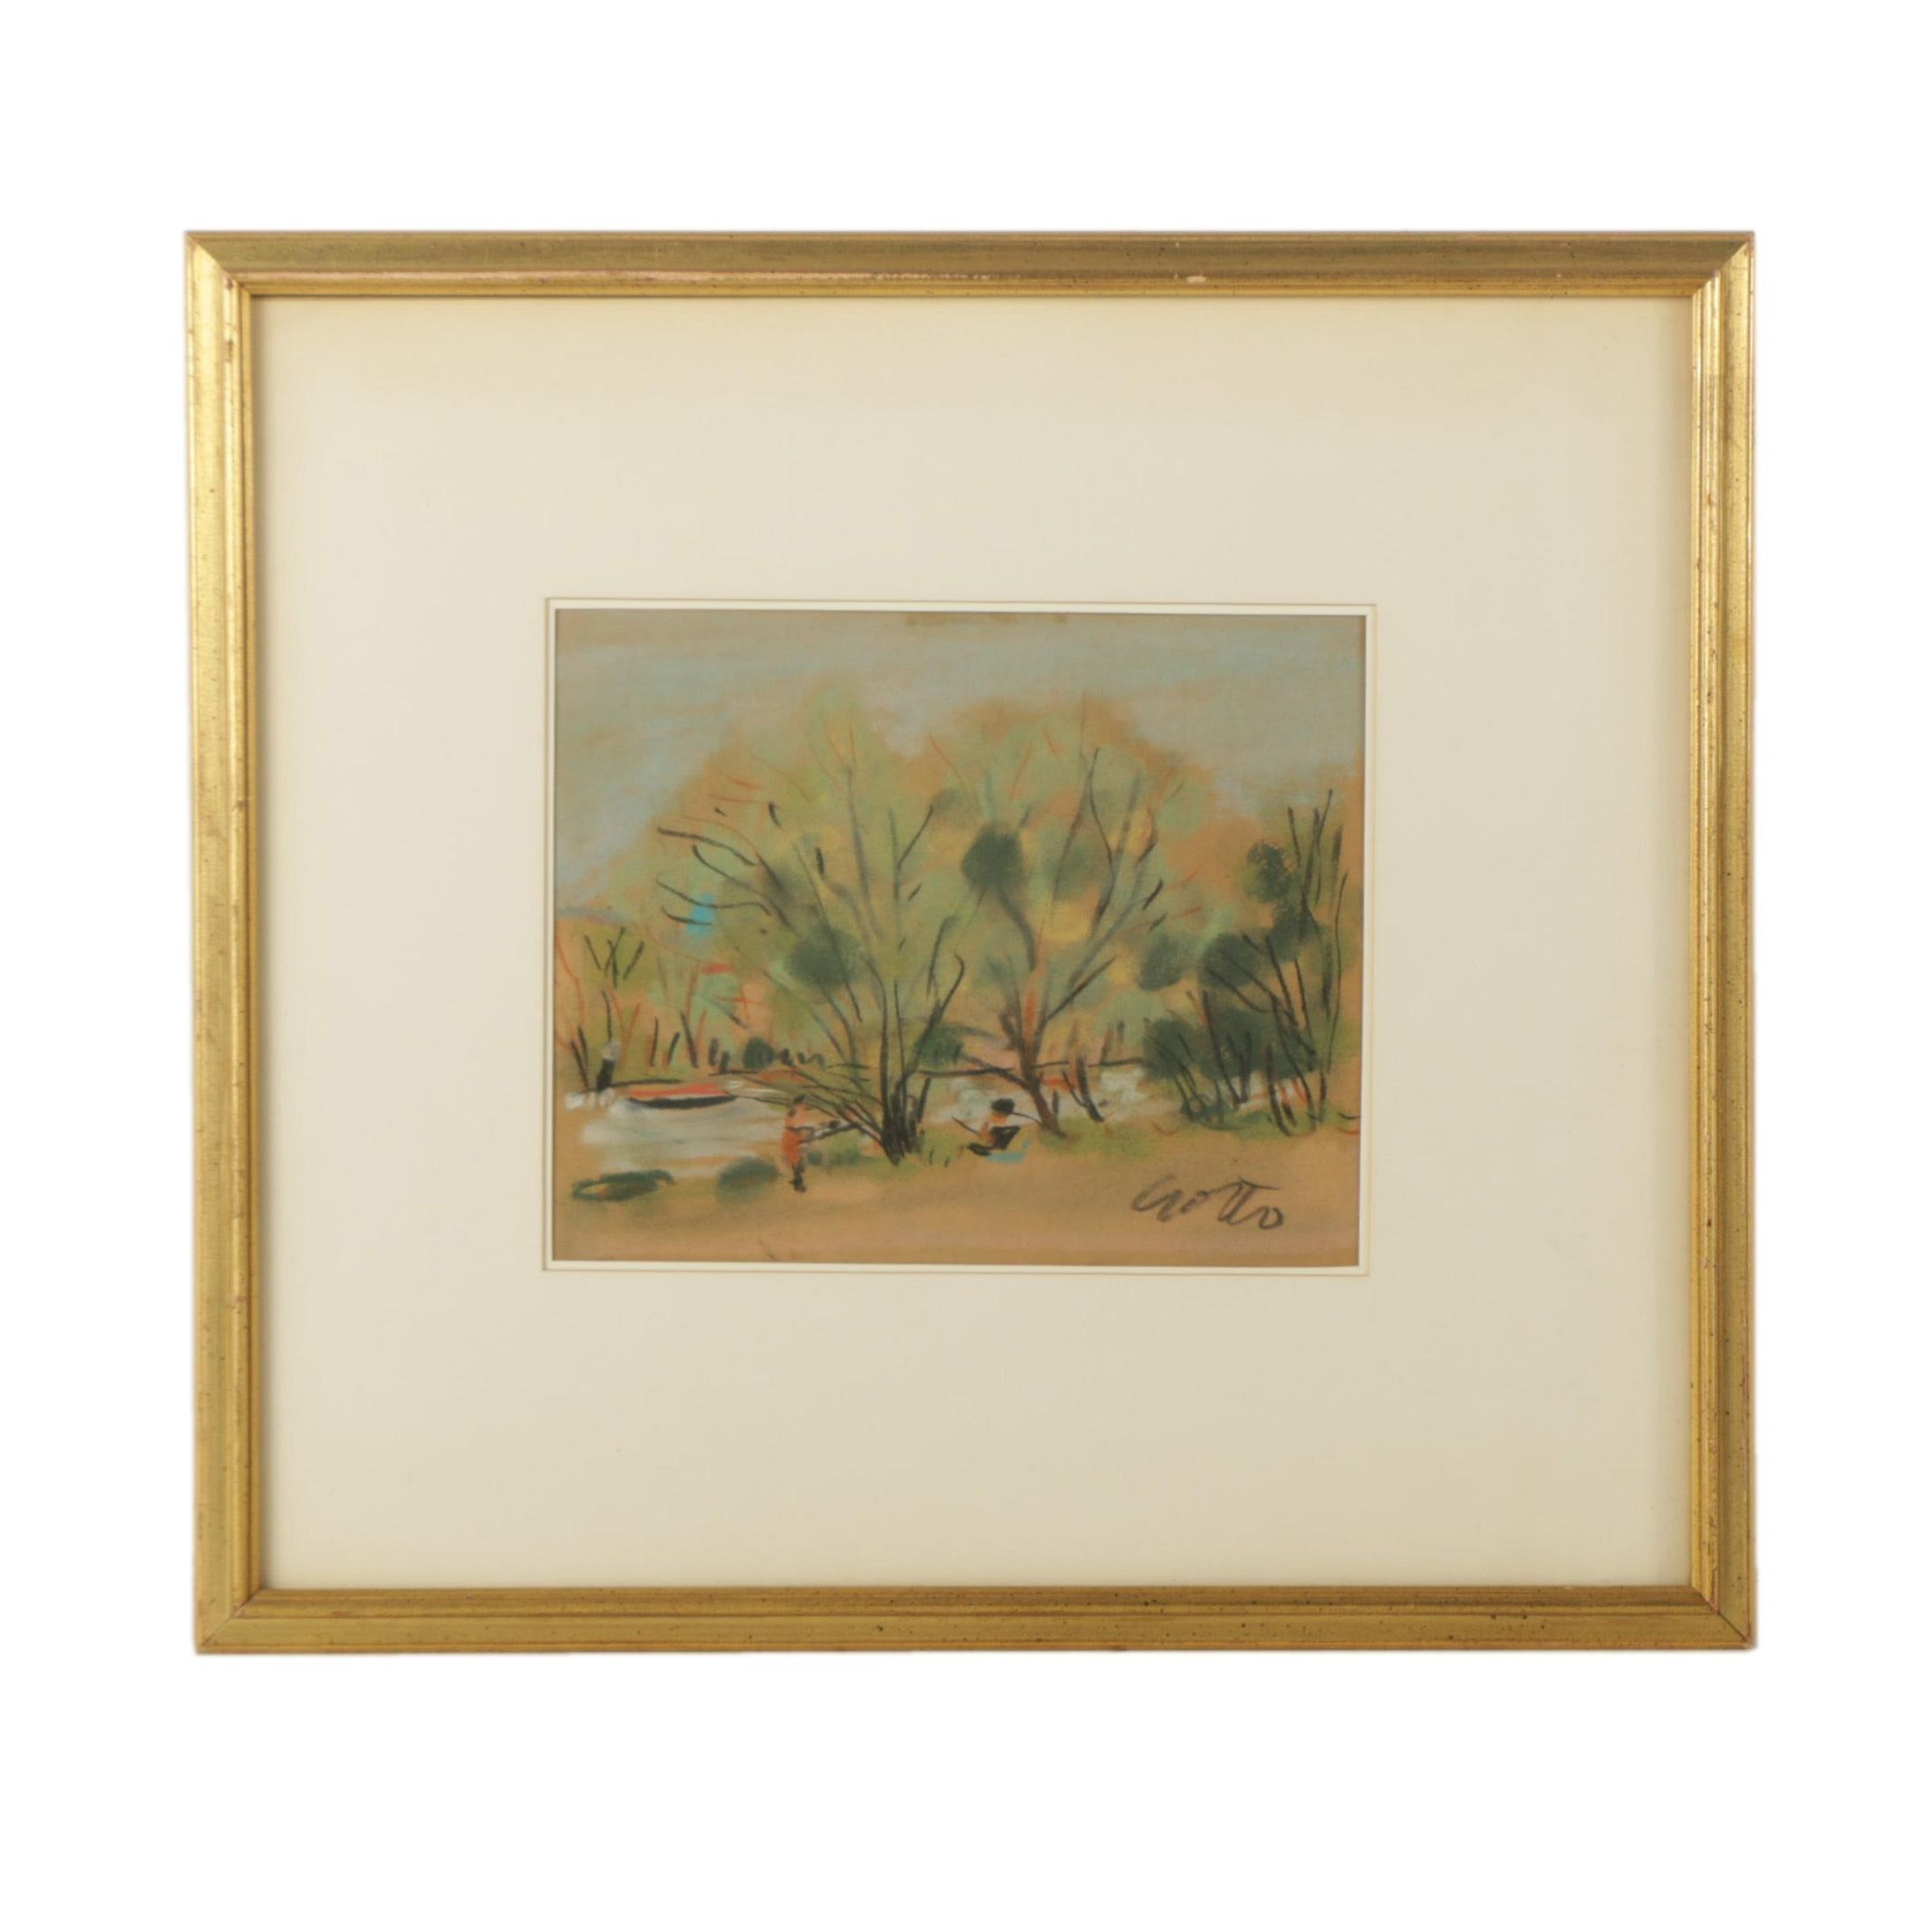 Paul Crotto Pastel Drawing of a Landscape